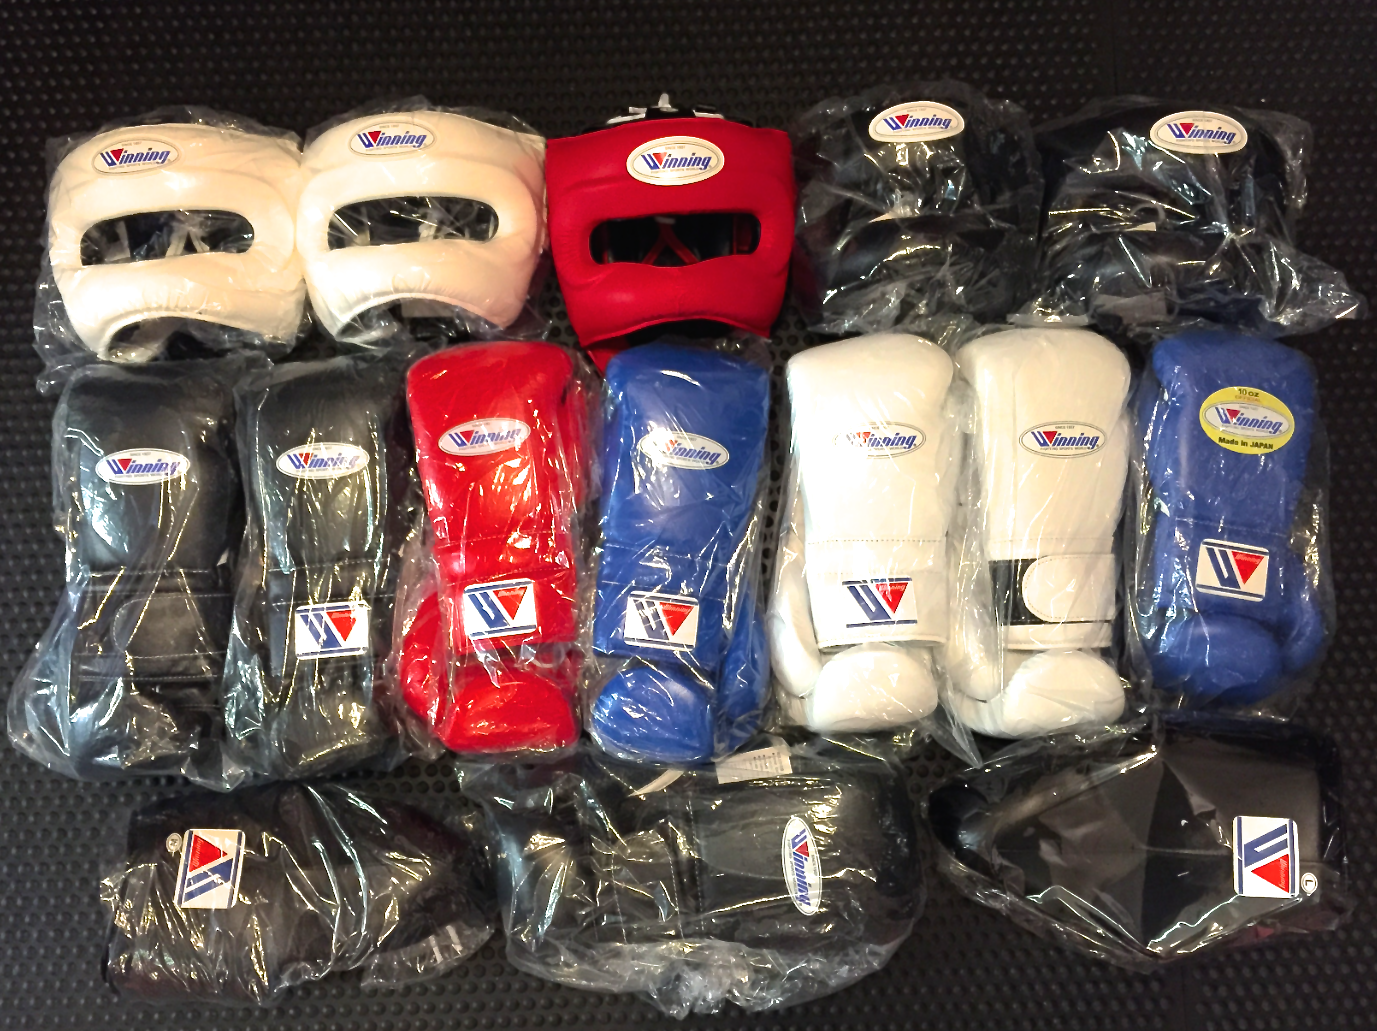 Winning Stock Delivery Check Out All The Items In The Link Below Http Www Geezersboxing Co Uk Catalogsearch Re Winning Boxing Mma Equipment Mma Training